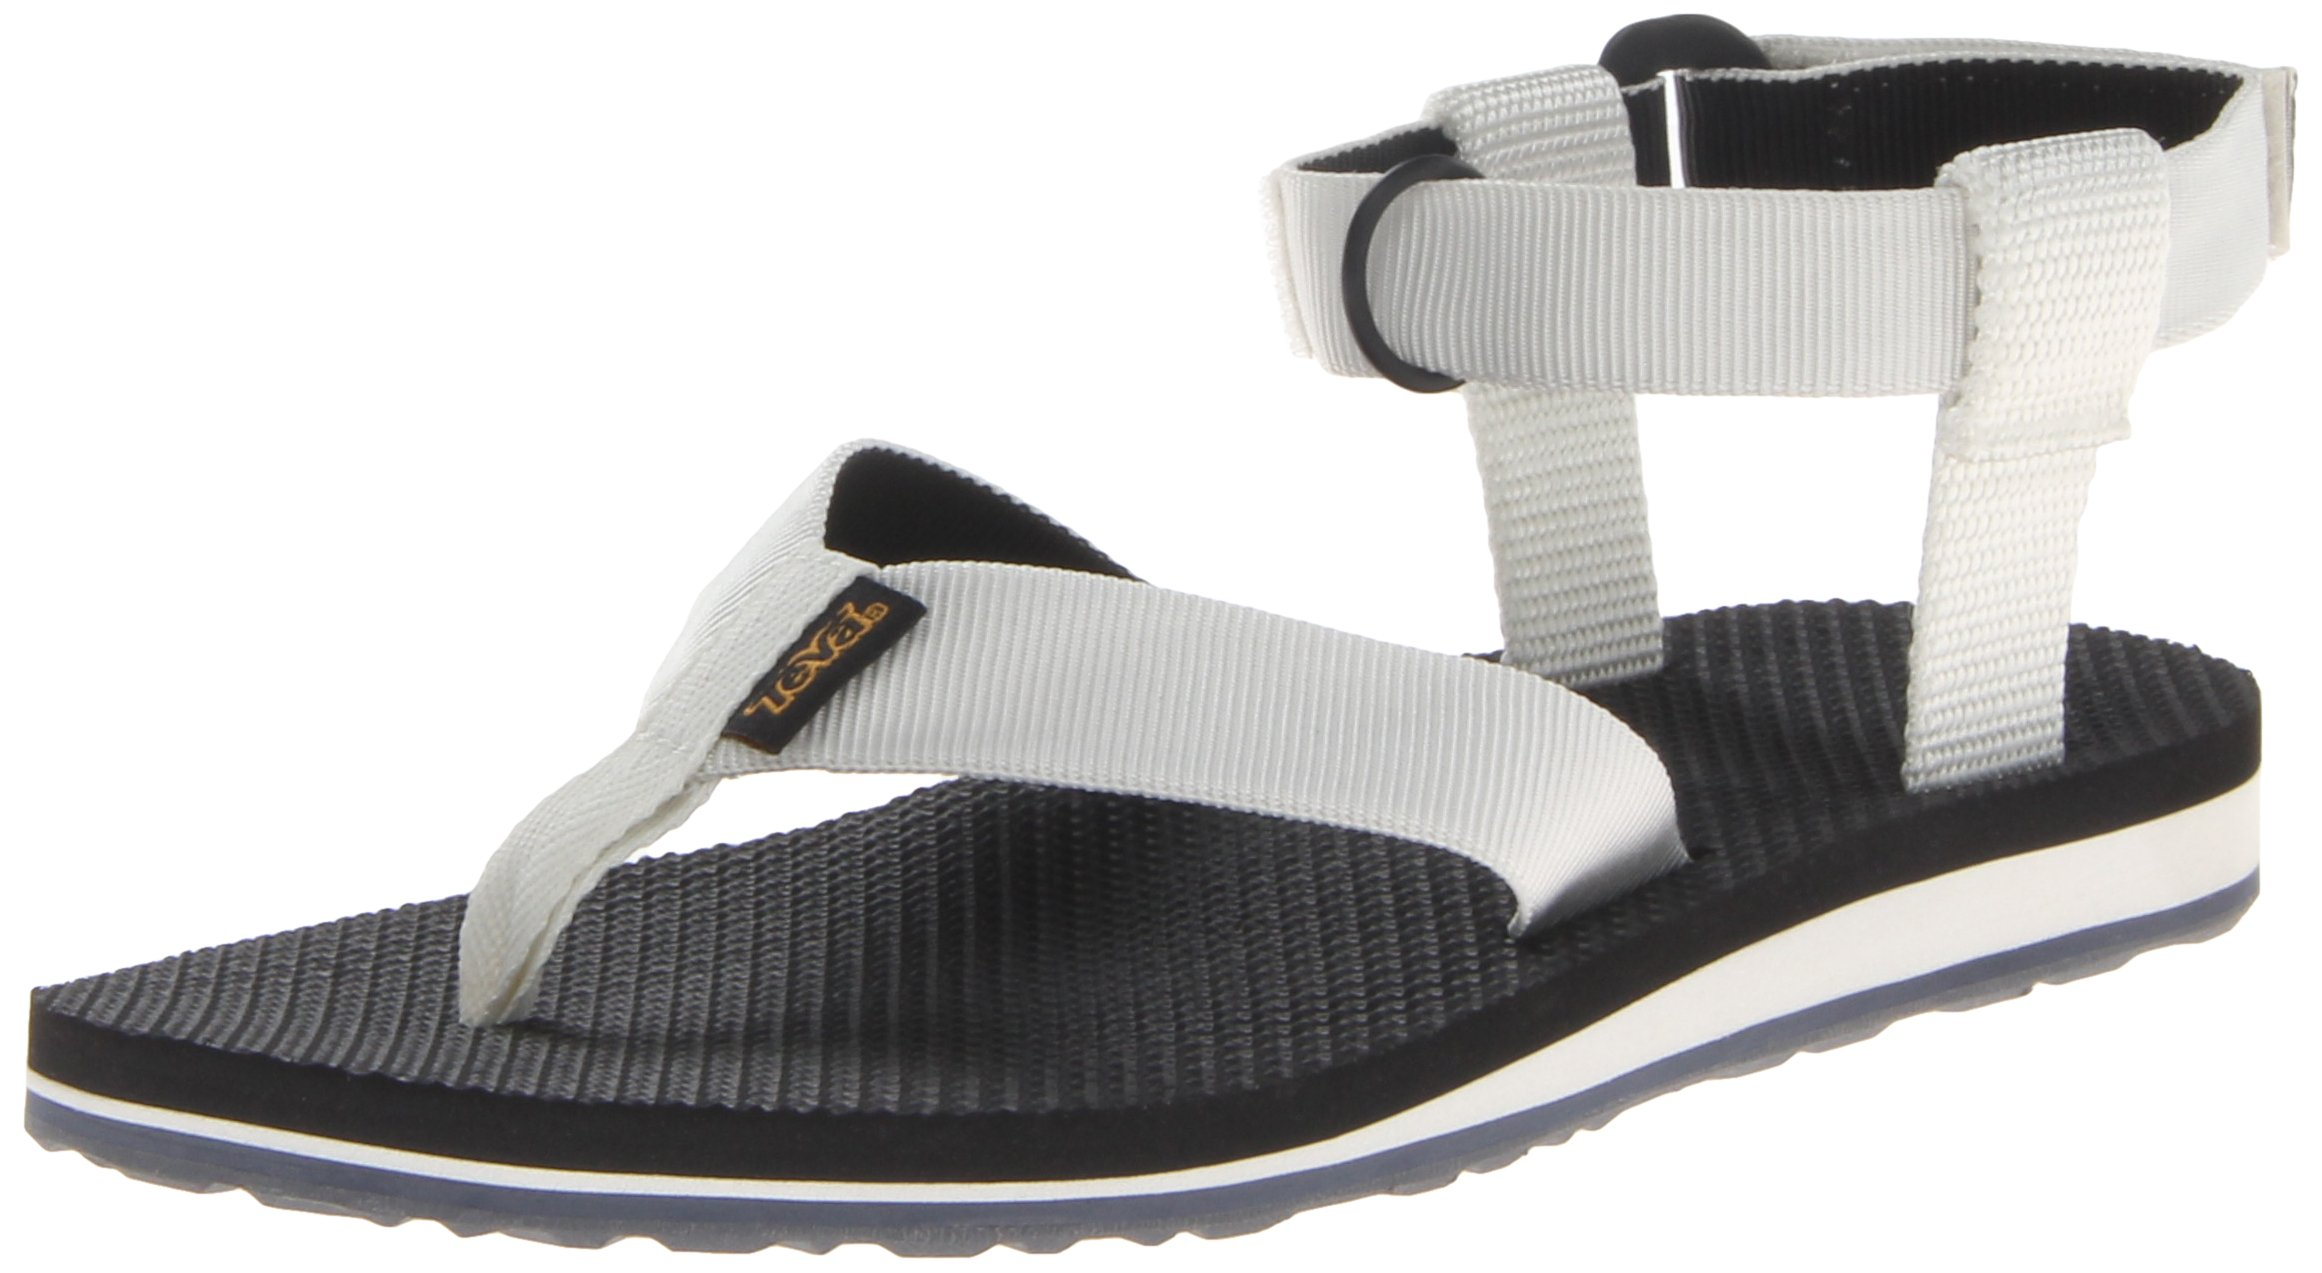 Teva Women's Original Sandal,White/Black,7 M US